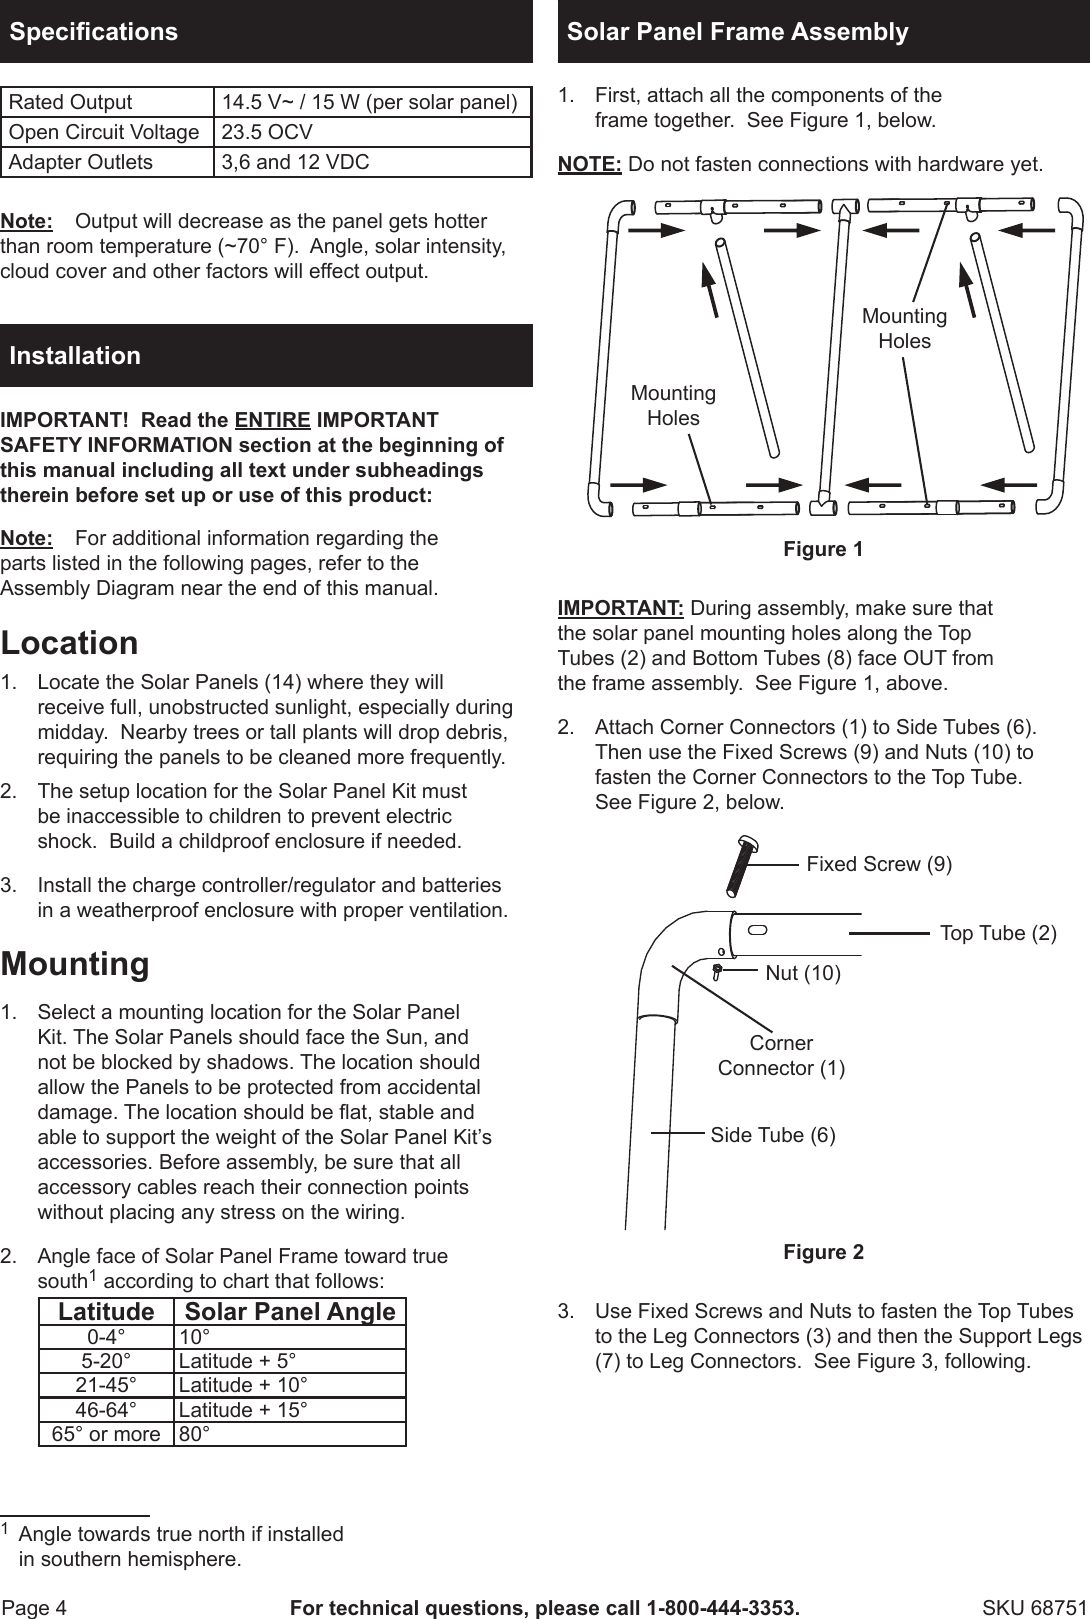 page 4 of 11 - harbor-freight harbor-freight-45-watt-